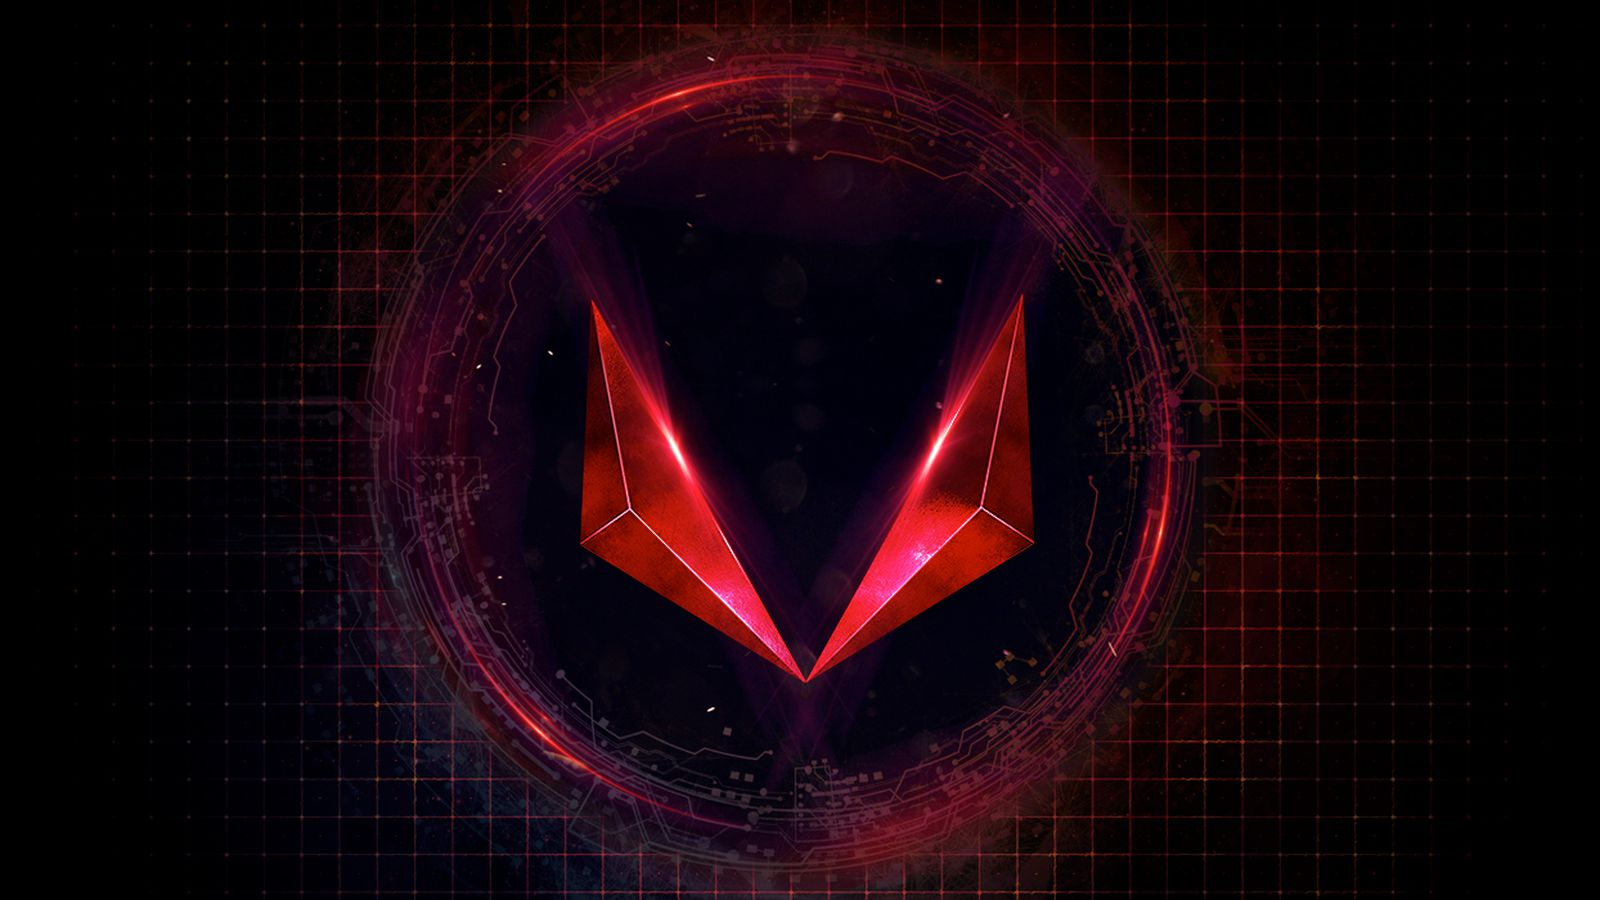 AMD takes aim at Nvidia with high-end Vega graphics cards